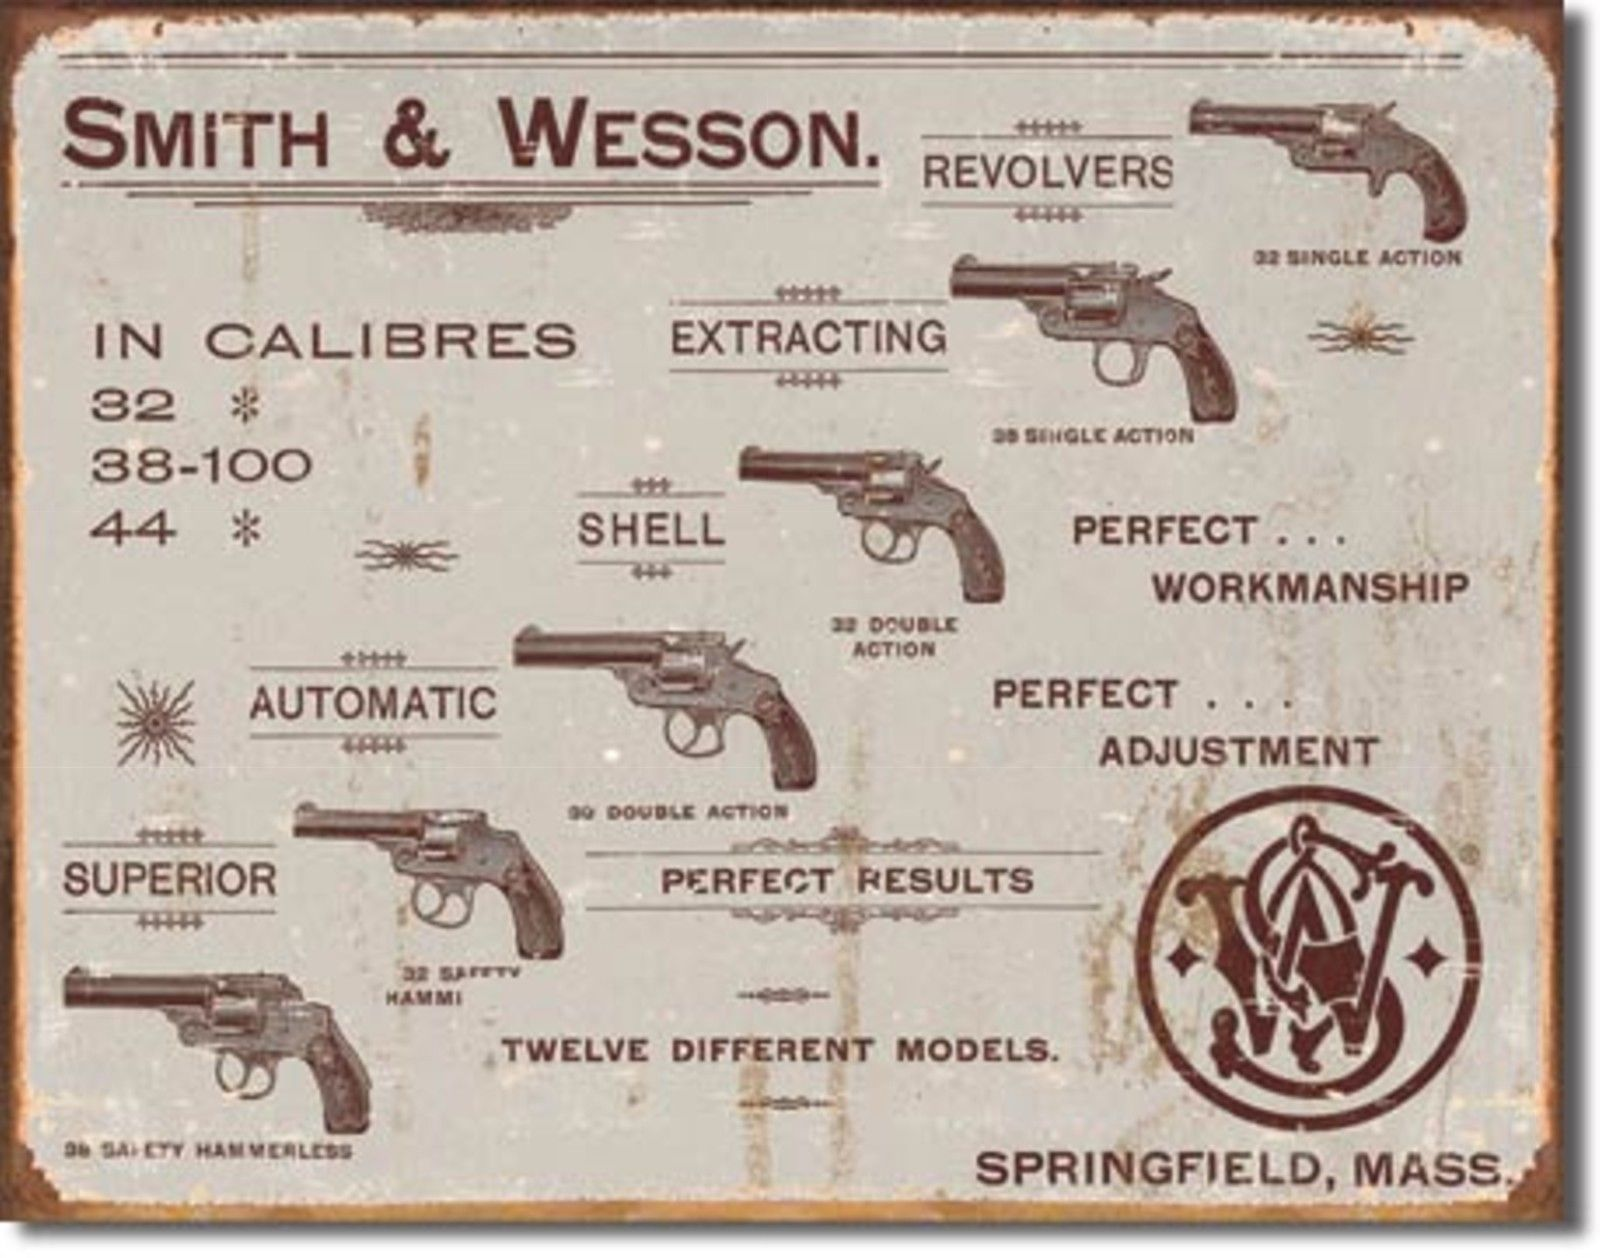 Smith & Wesson Pistols Revolvers Metal Sign Tin New Vintage Style USA #1466